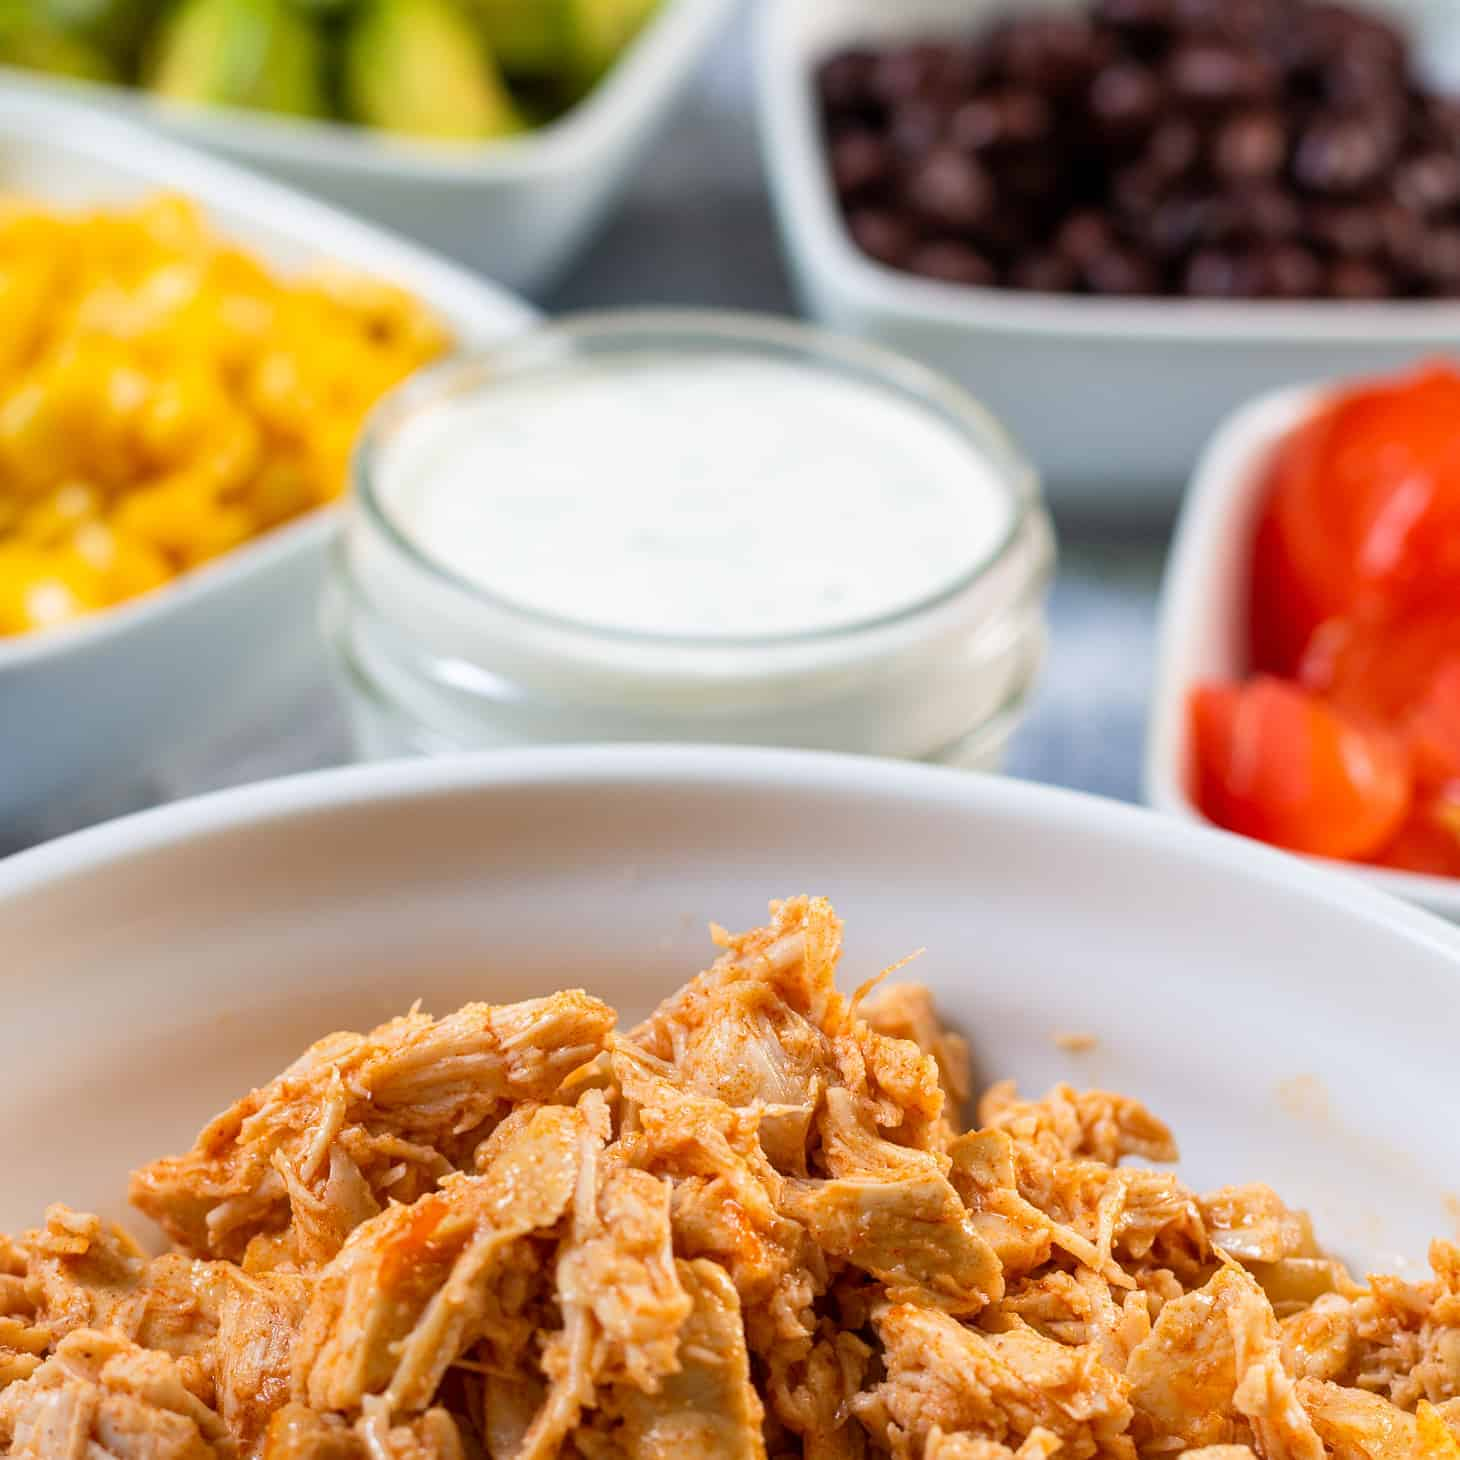 Ingredients for the loaded Buffalo Chicken Salad